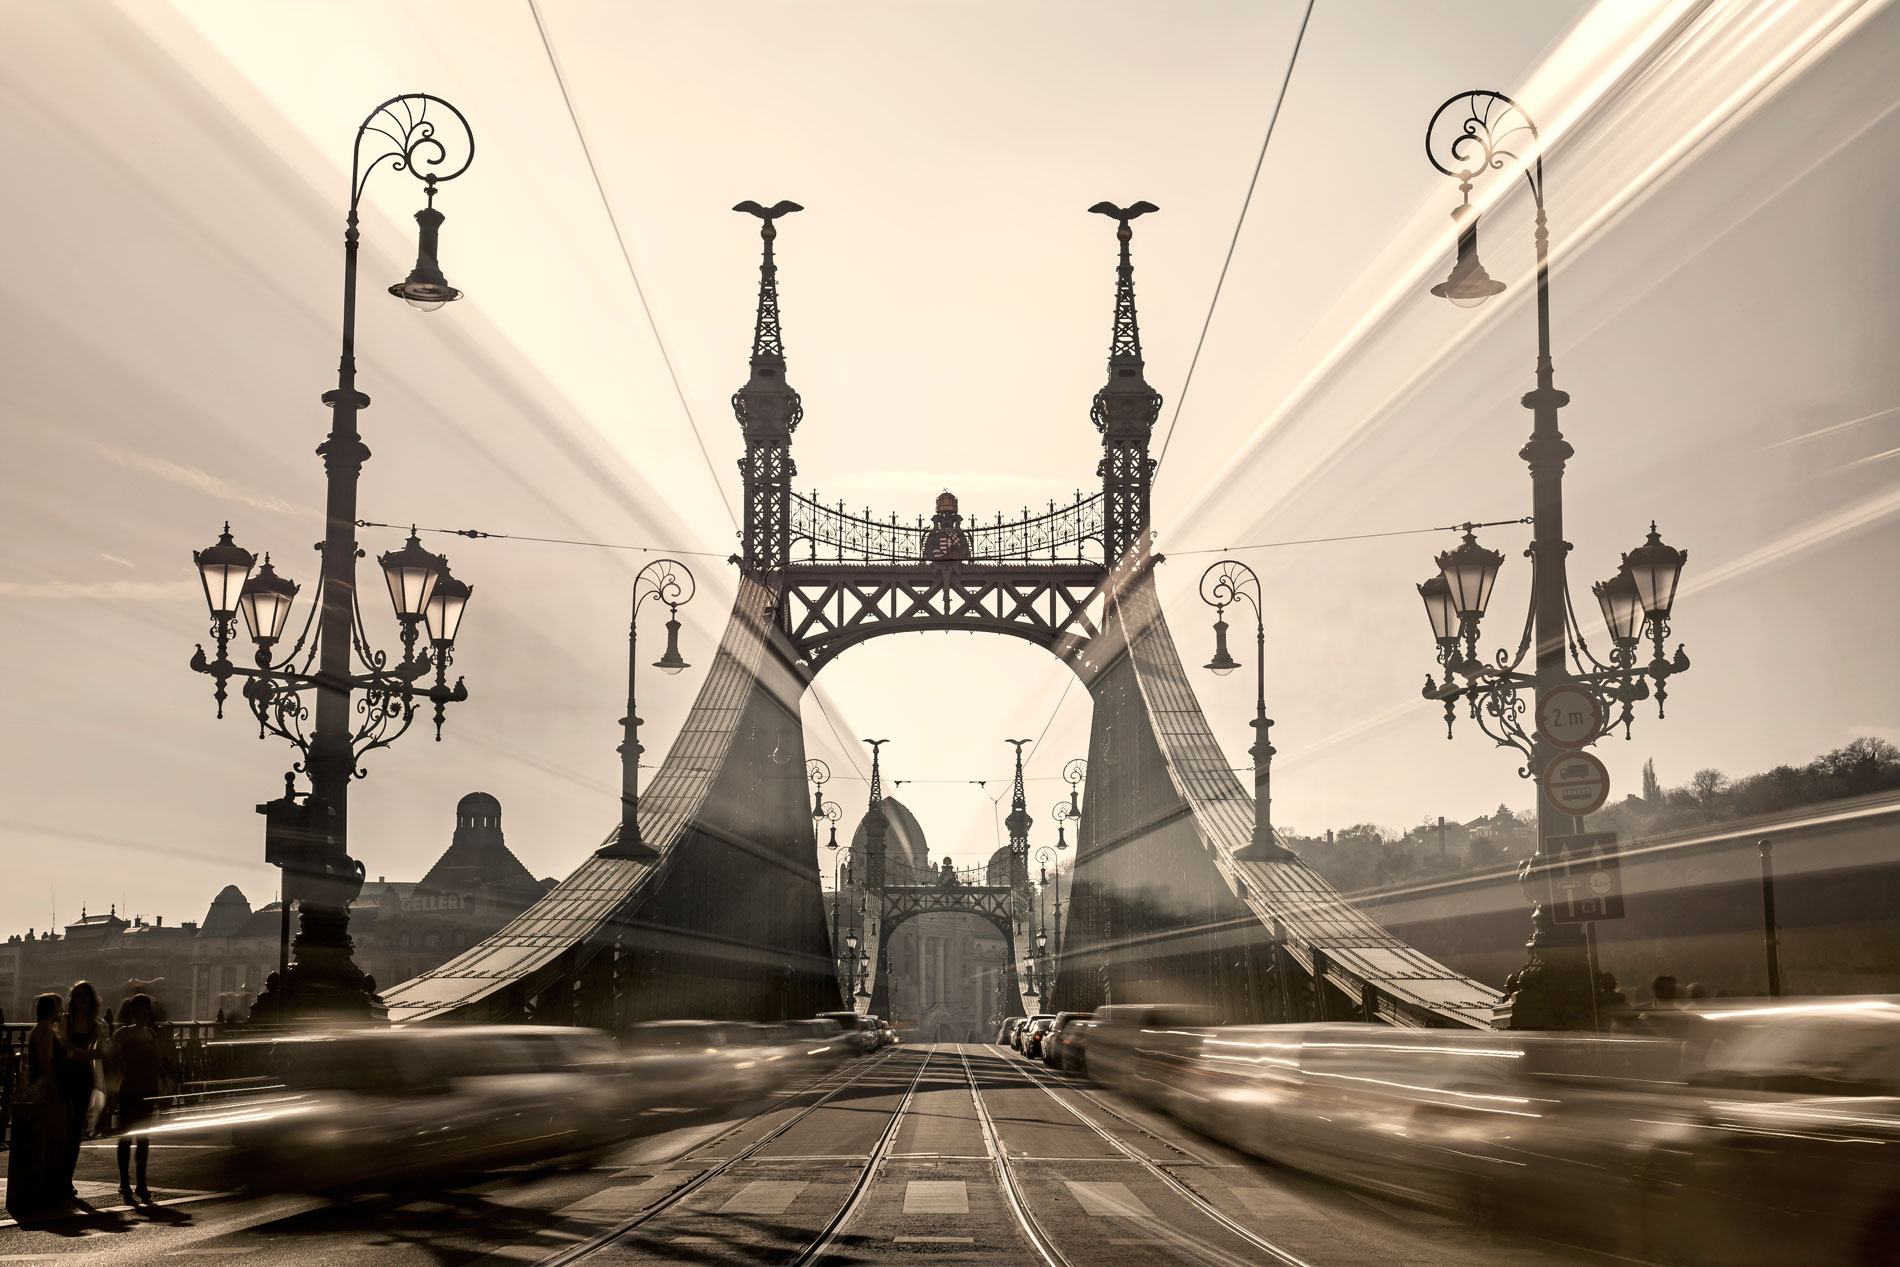 budapest_atthary_photography_bridge_01